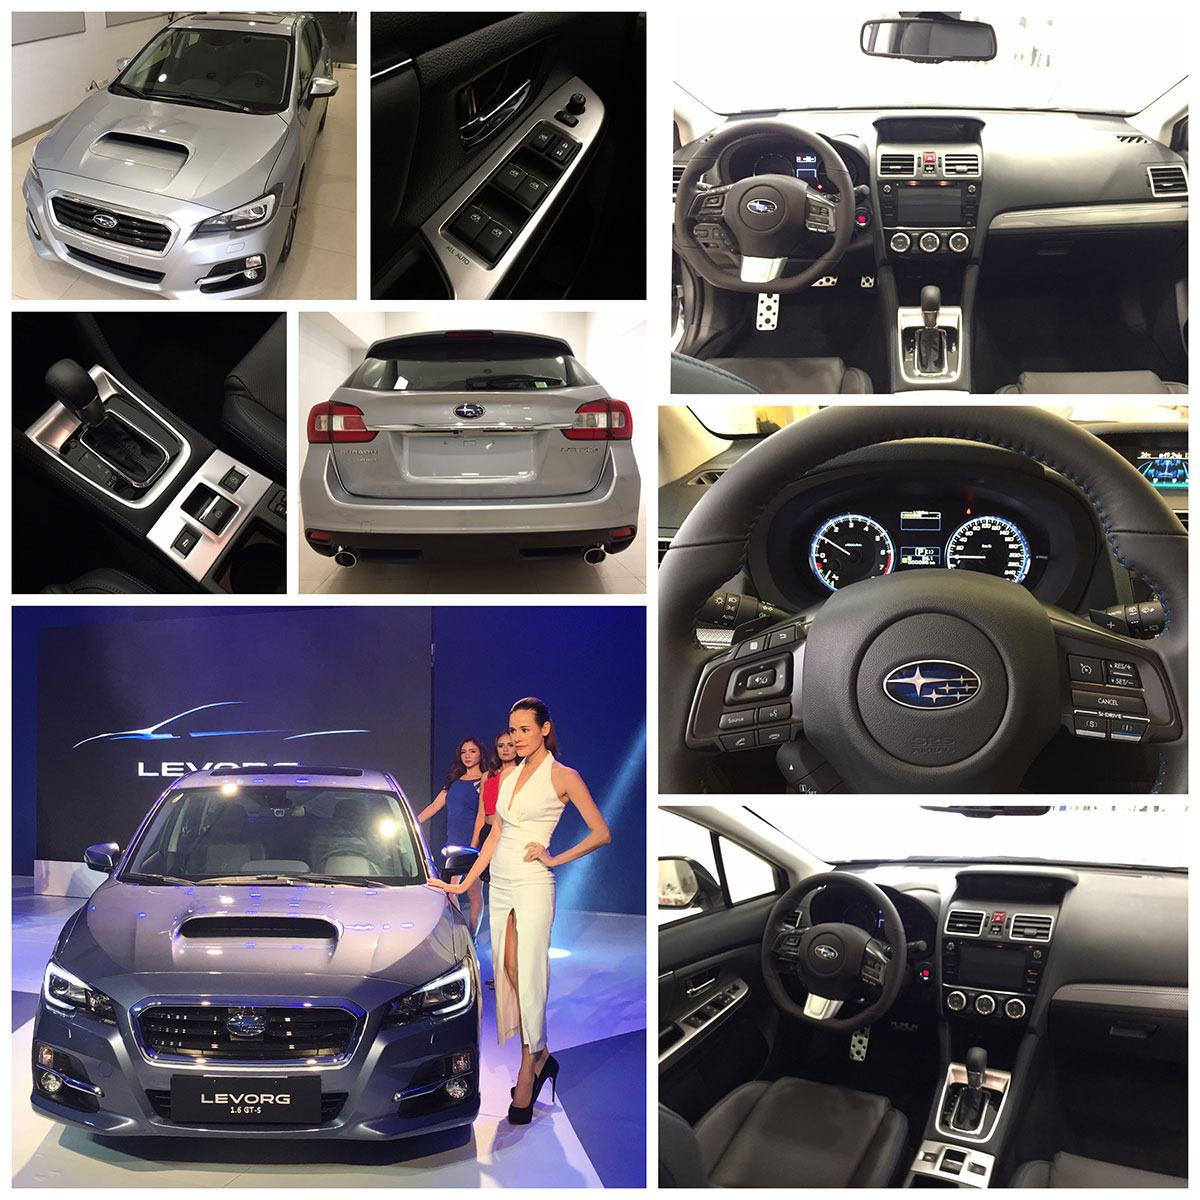 Subaru-Levorg-collage